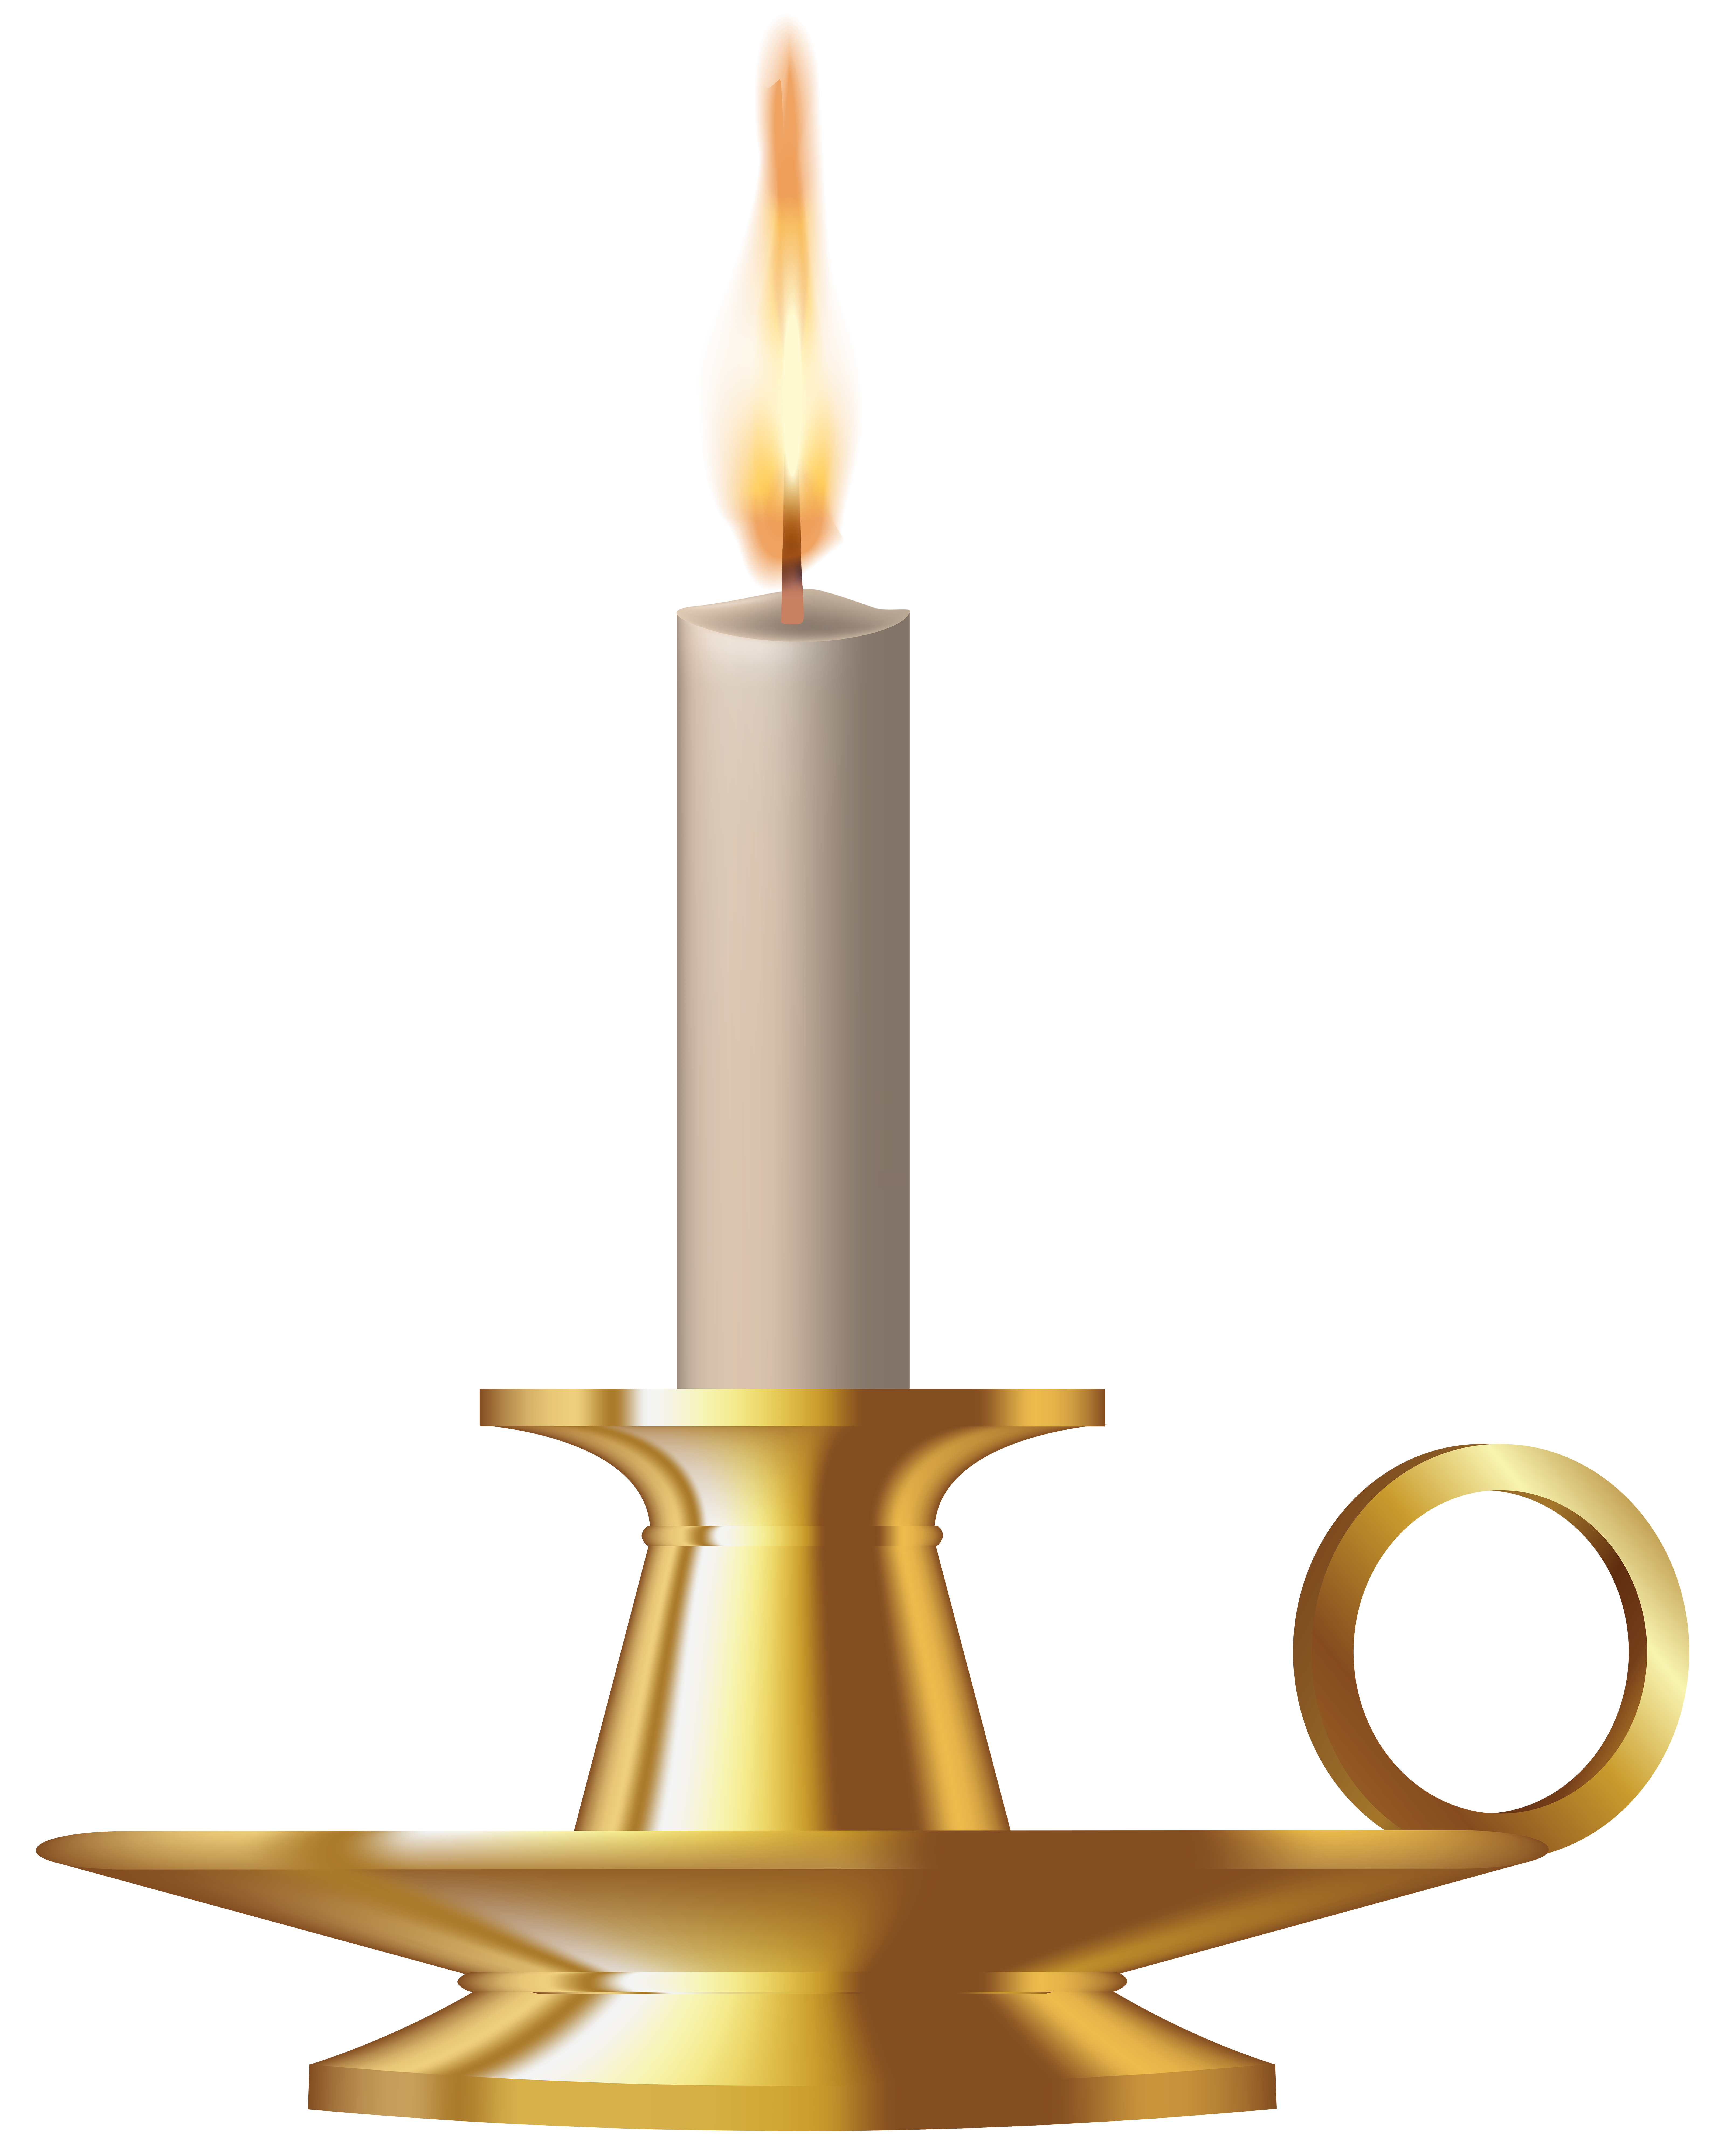 jpg library Clock clipart candle. Gold candlestick png clip.